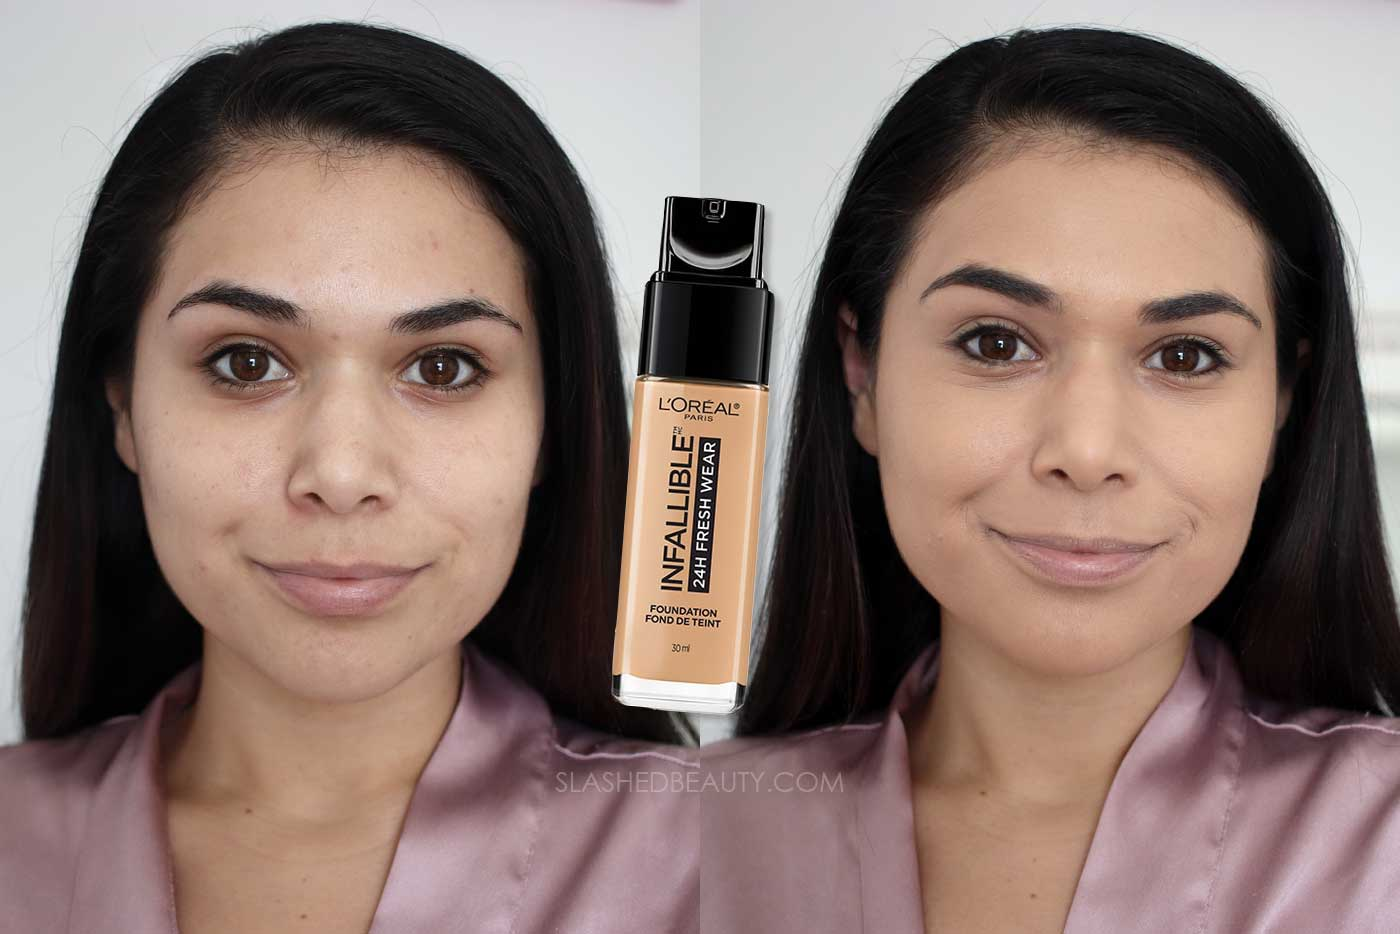 Discover the 4 Best Full Coverage Drugstore Foundations | L'Oreal Infallible Fresh Wear 24HR Foundation Review Before & After | Slashed Beauty